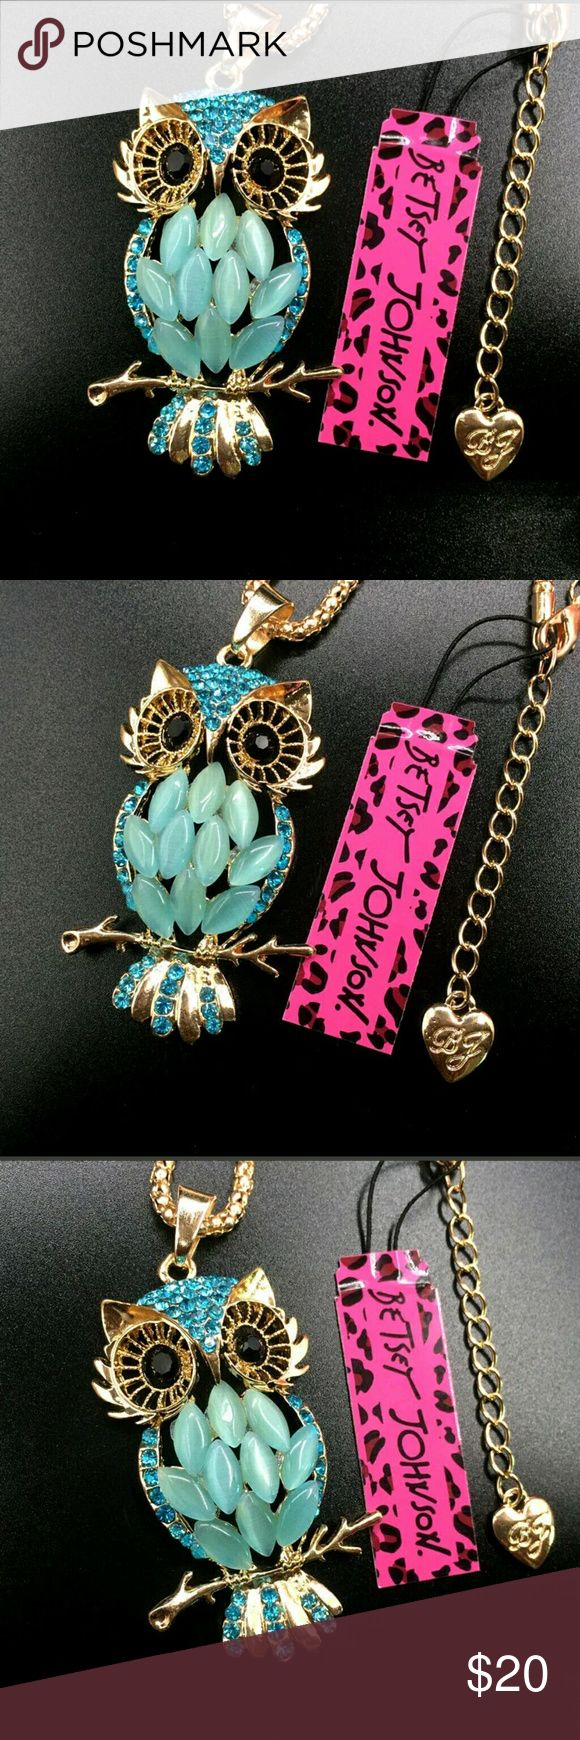 20 best Betsey Johnson Jewelry images on Pinterest | Betsey johnson ...